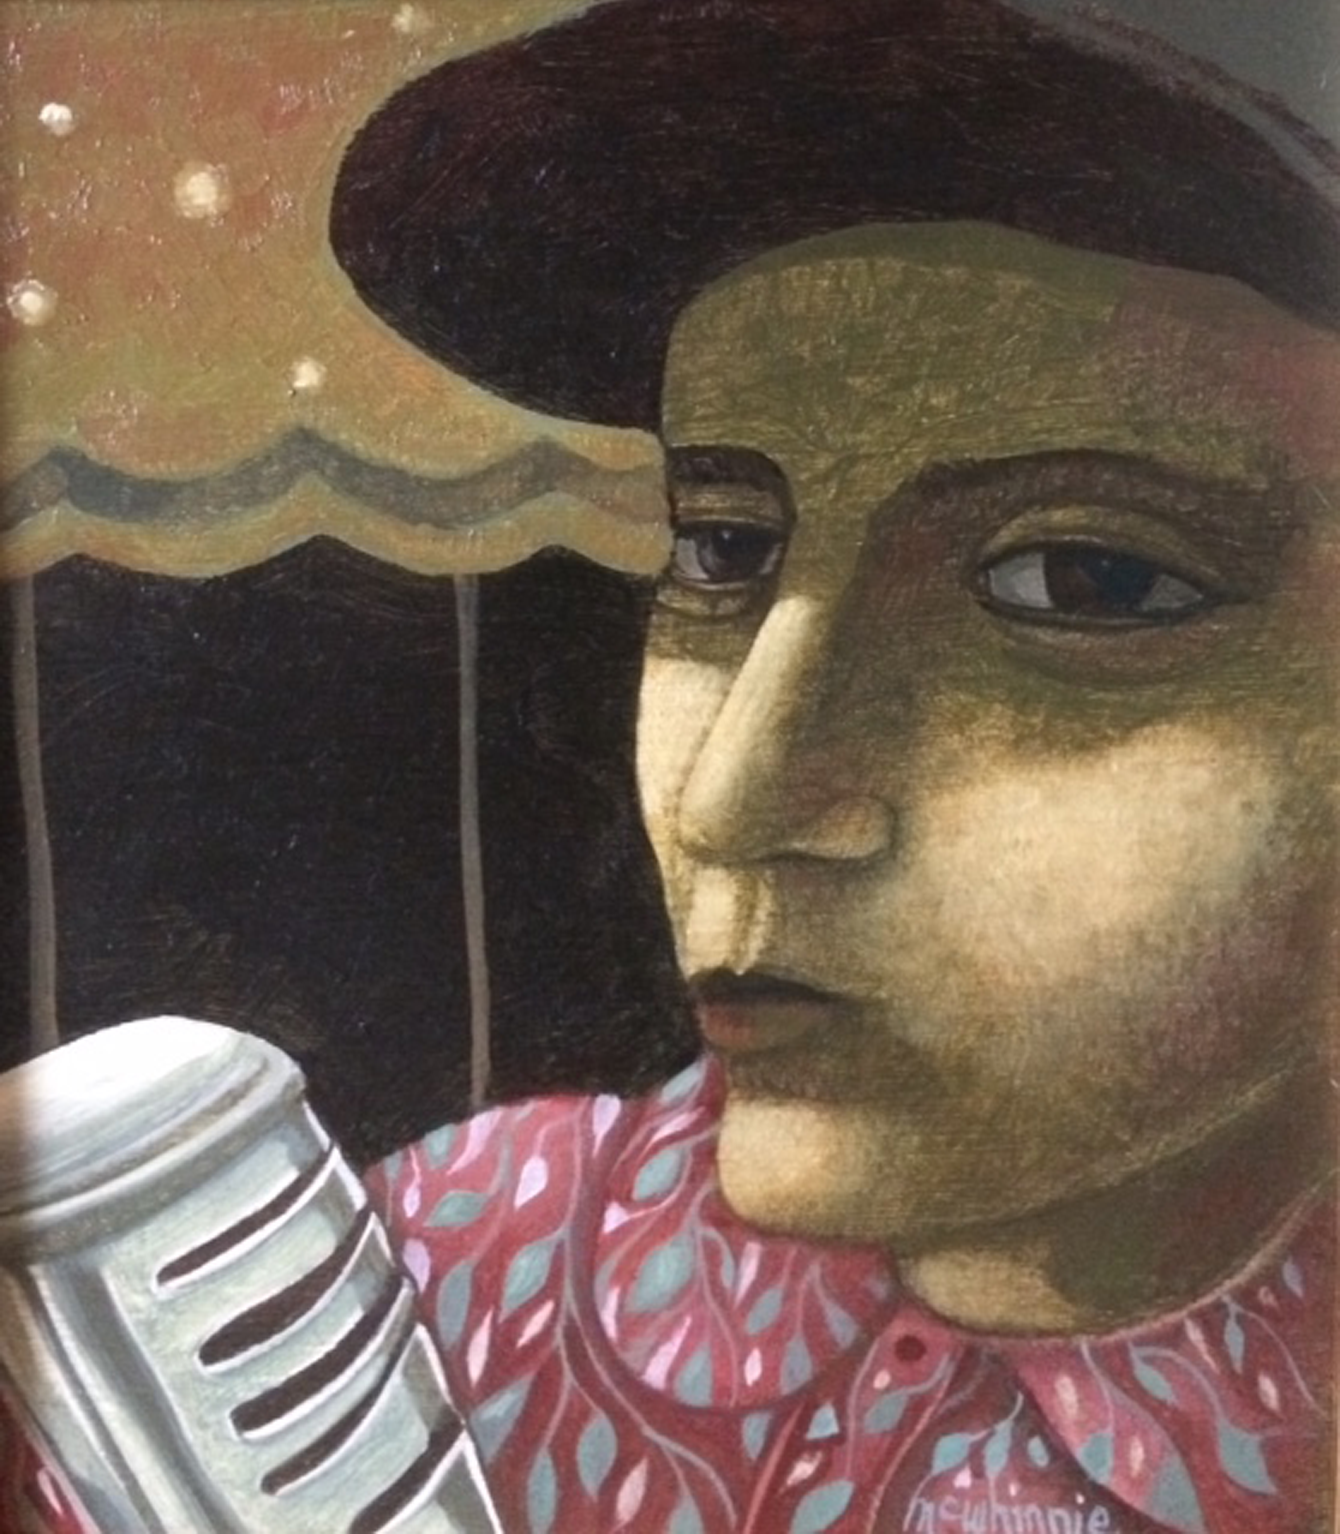 Artist: Ian McWhinnie  Title: On Vocals  Size: 20 x 18 cm  Medium: Oil on panel   Price: £600